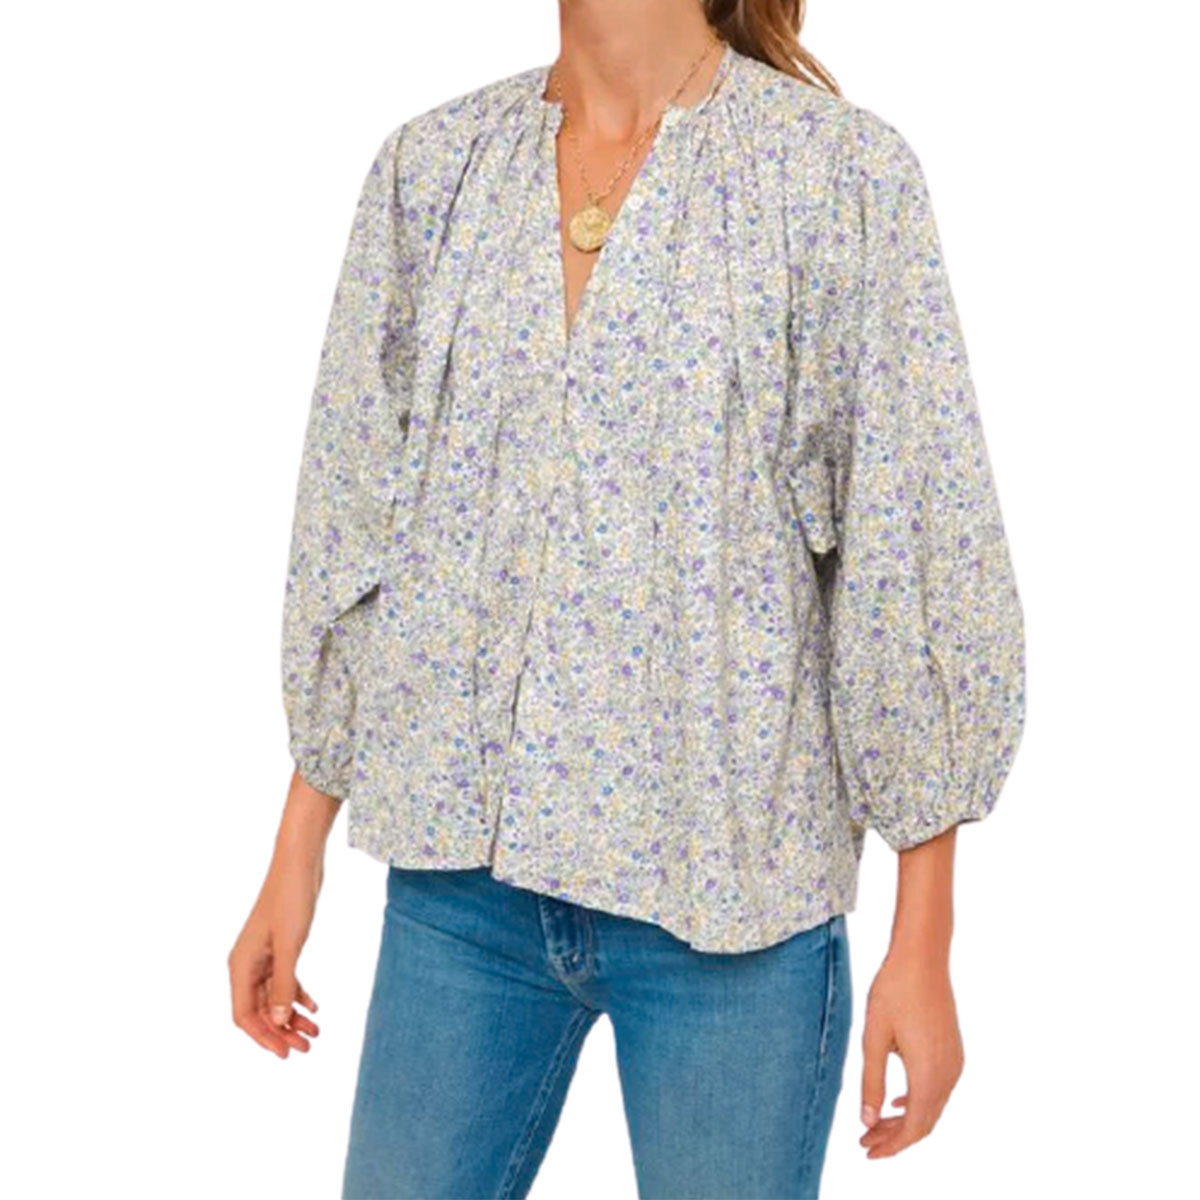 Emerson Floral Top | Tuesday Morning Musings | 177